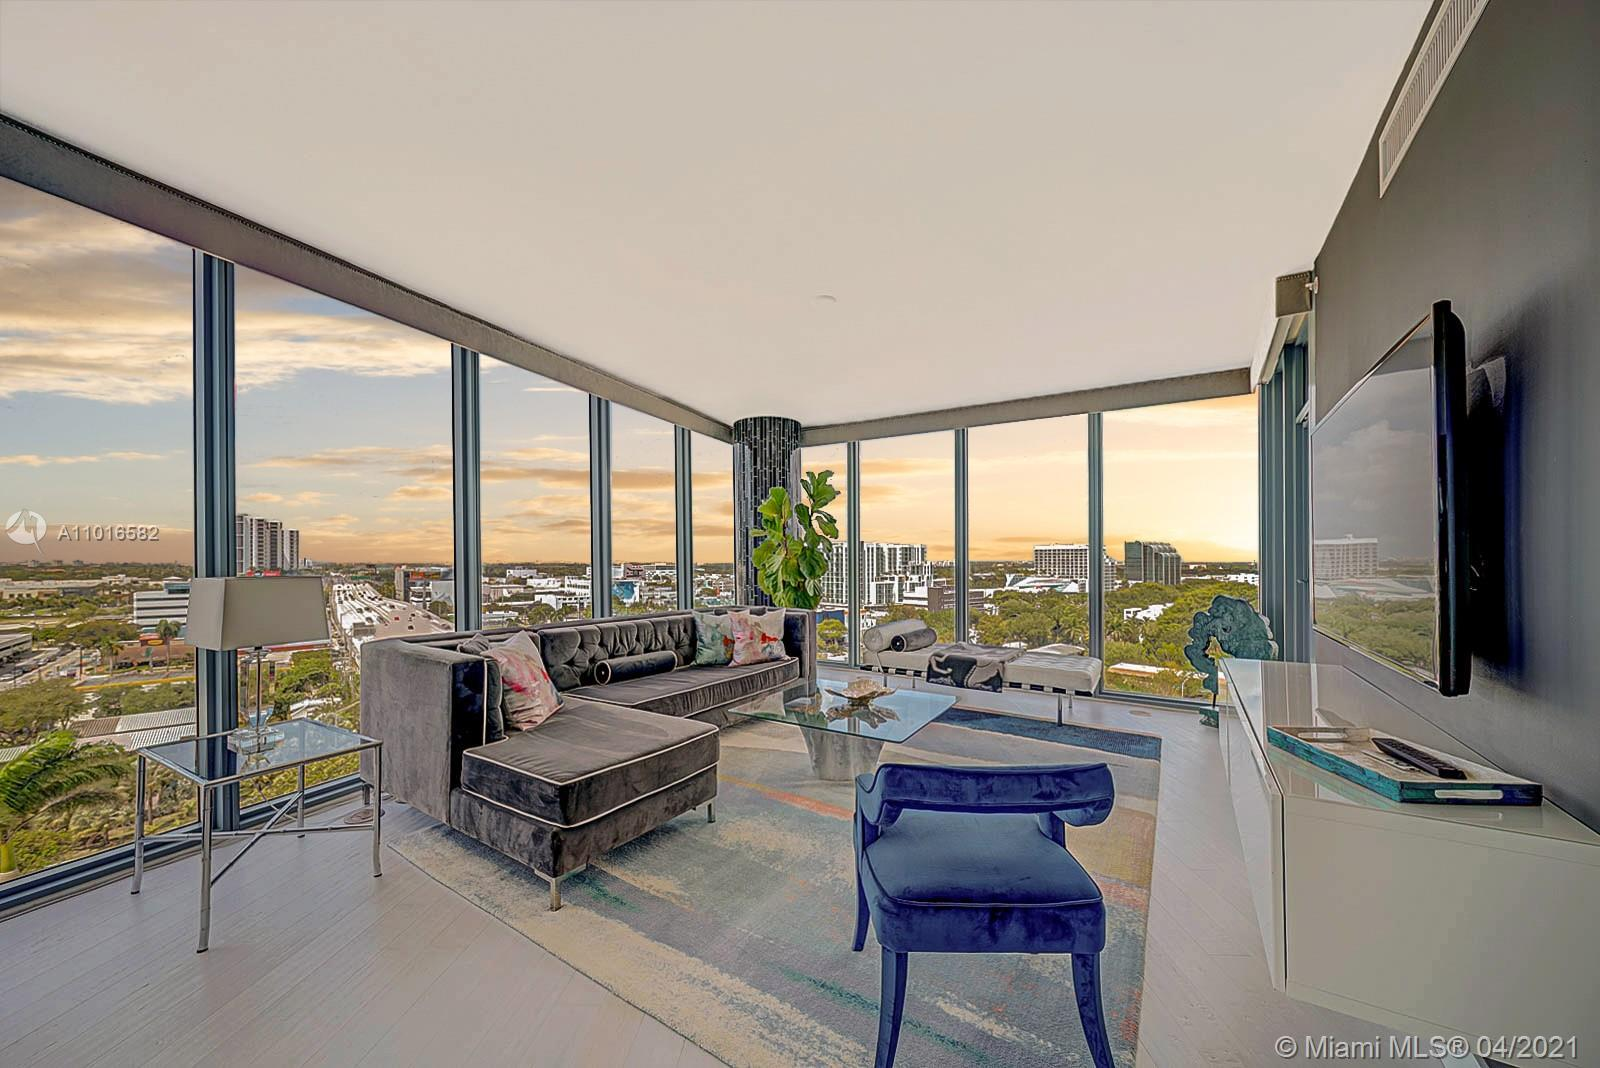 Magnificent 1,449 SF 2 BD/2.5 BTHS corner-unit enveloped in 9-foot glass walls creating pure serenit